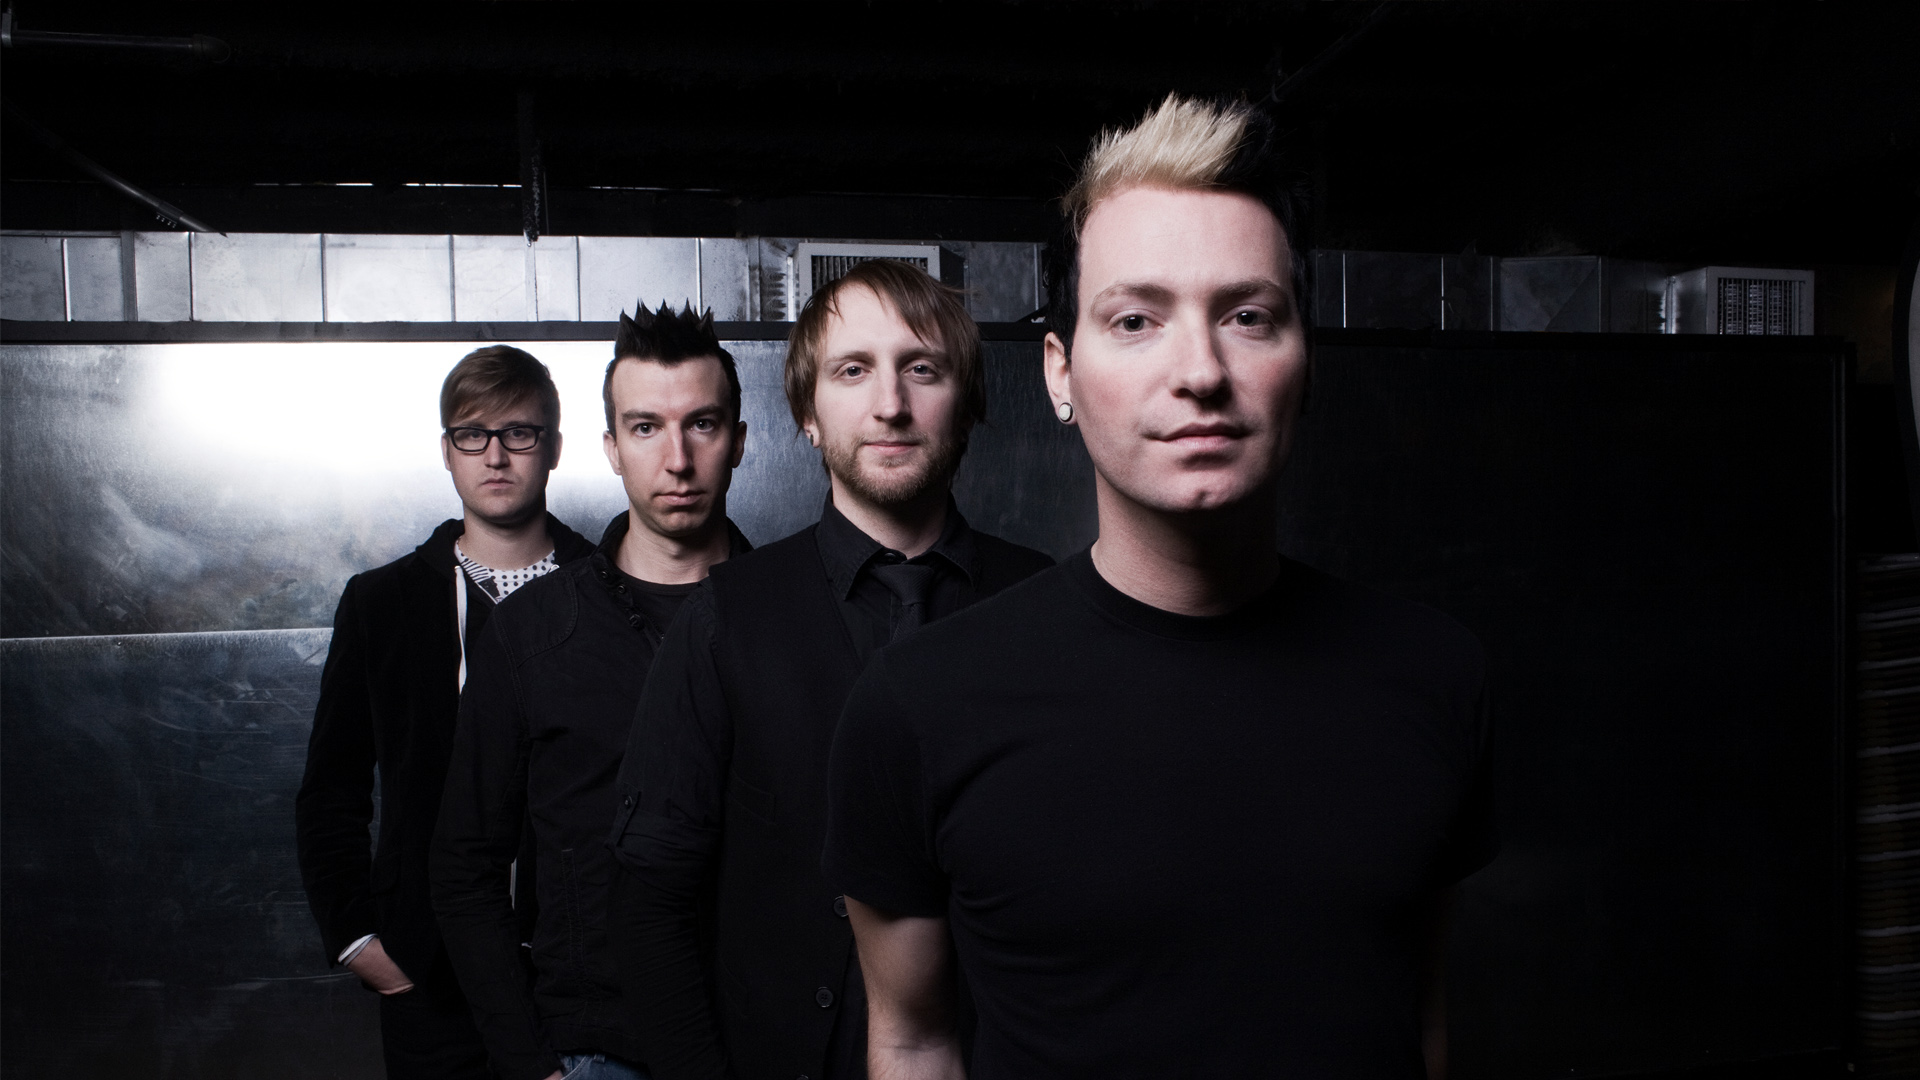 Thousand Foot Krutch Wallpapers High Quality | Download Free